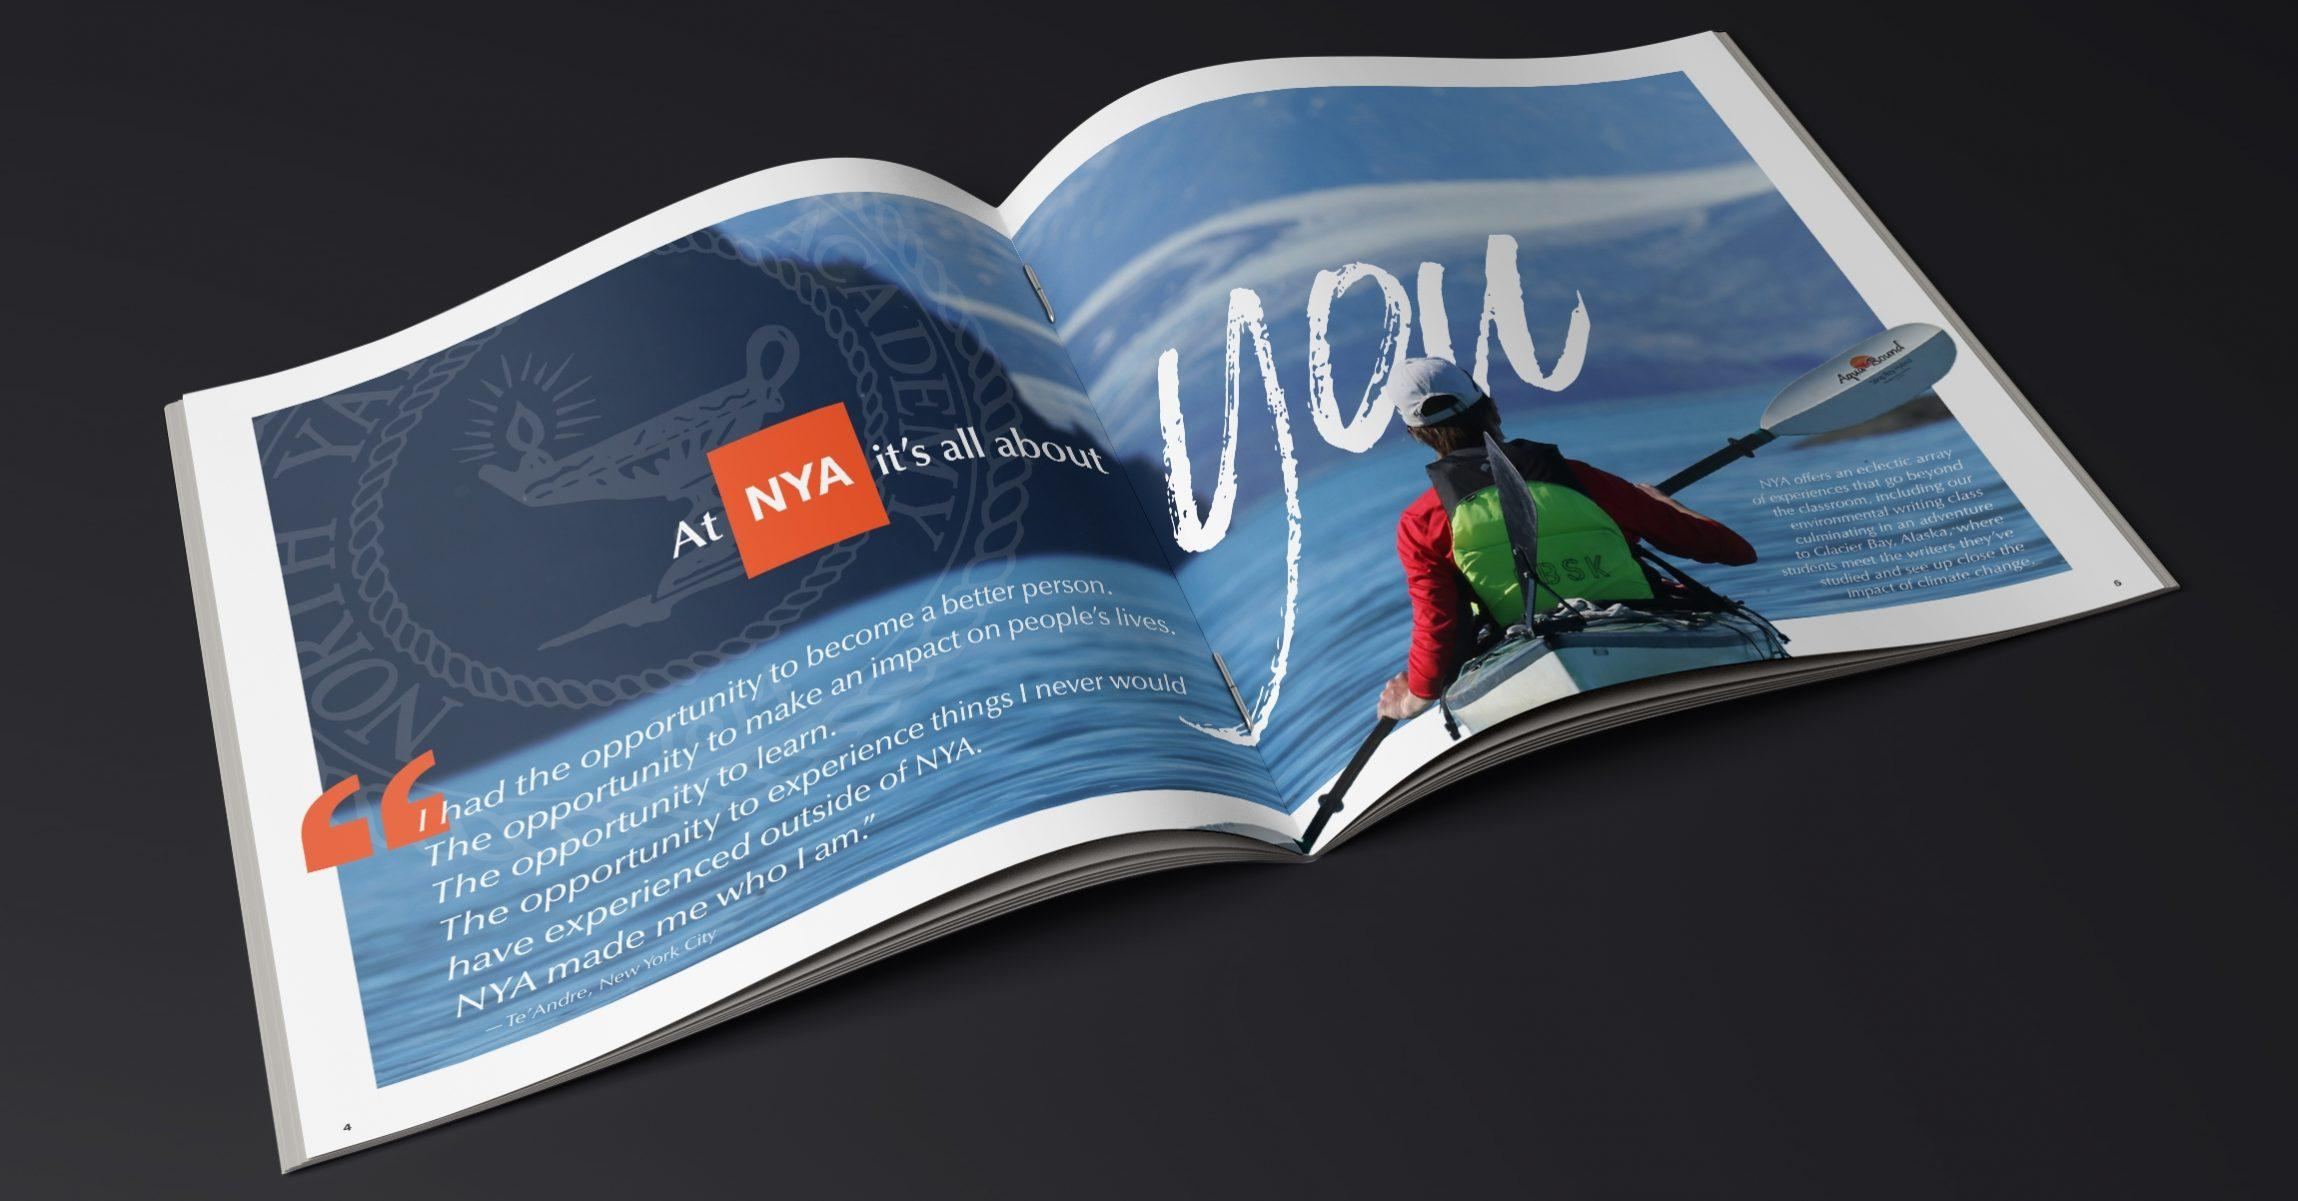 2021 NYA Viewbook Mockup Sea kayak background with text At NYA it's all about you